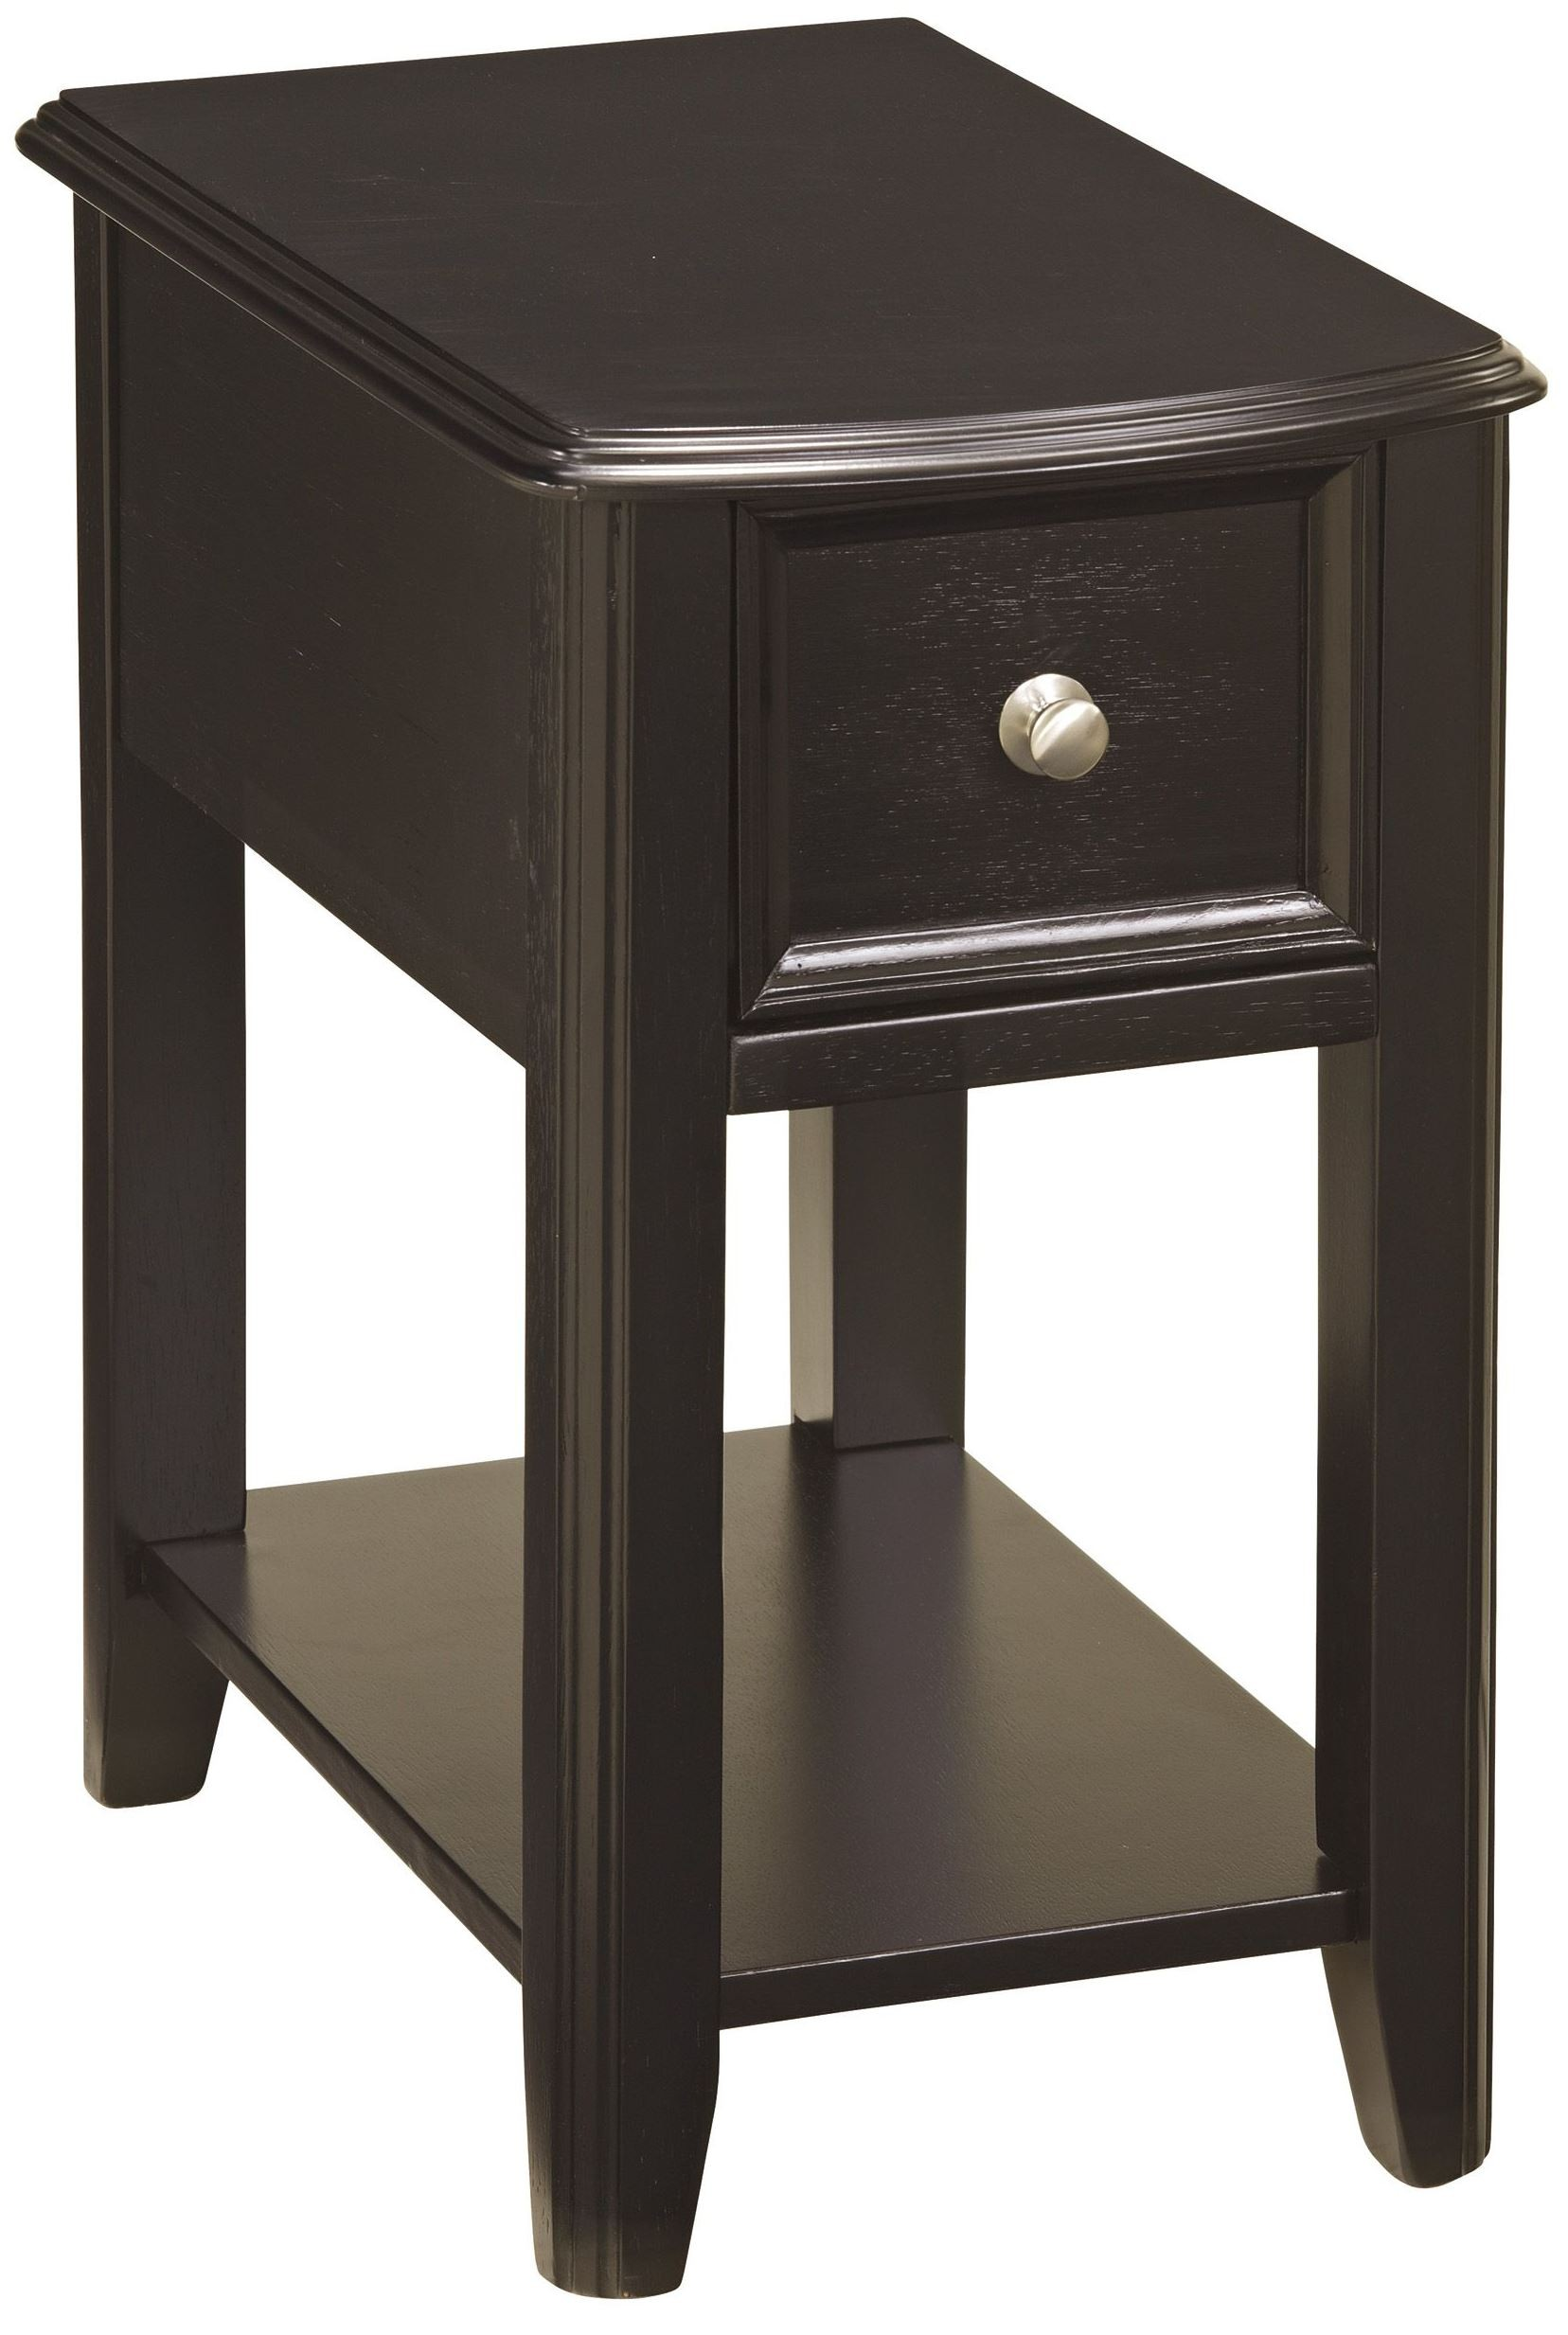 Black Side Table Chairside End Program Chair Side Black End Table From